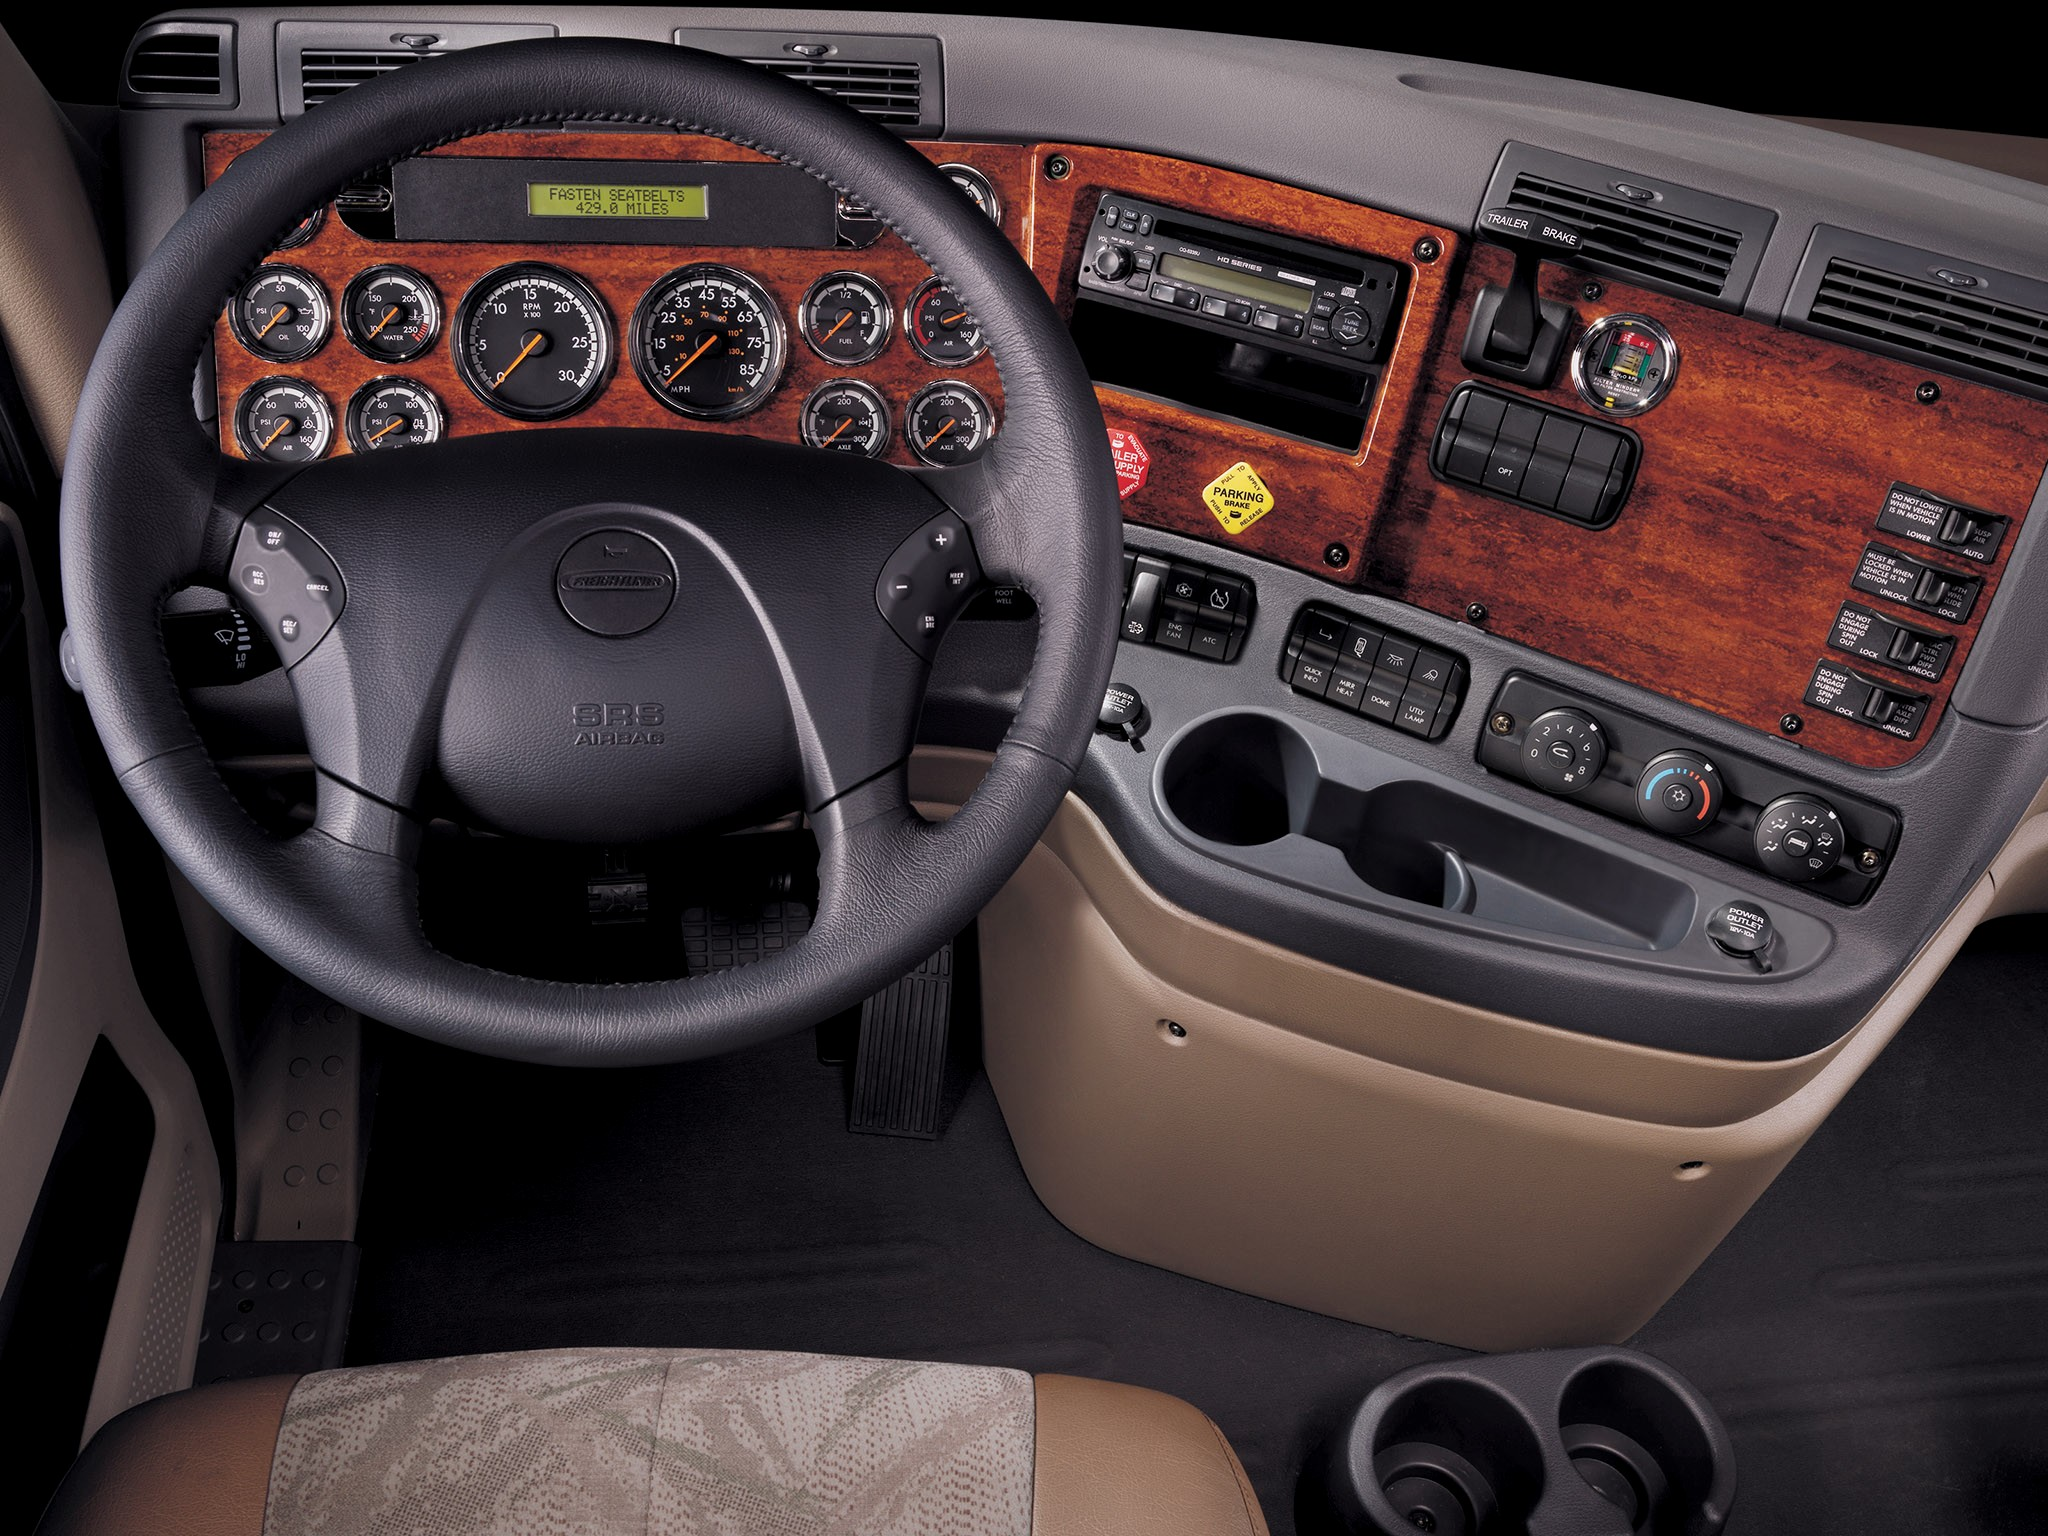 2007 freightliner cascadia raised roof semi tractor interior wallpaper 2048x1536 130849 for 2007 freightliner columbia interior